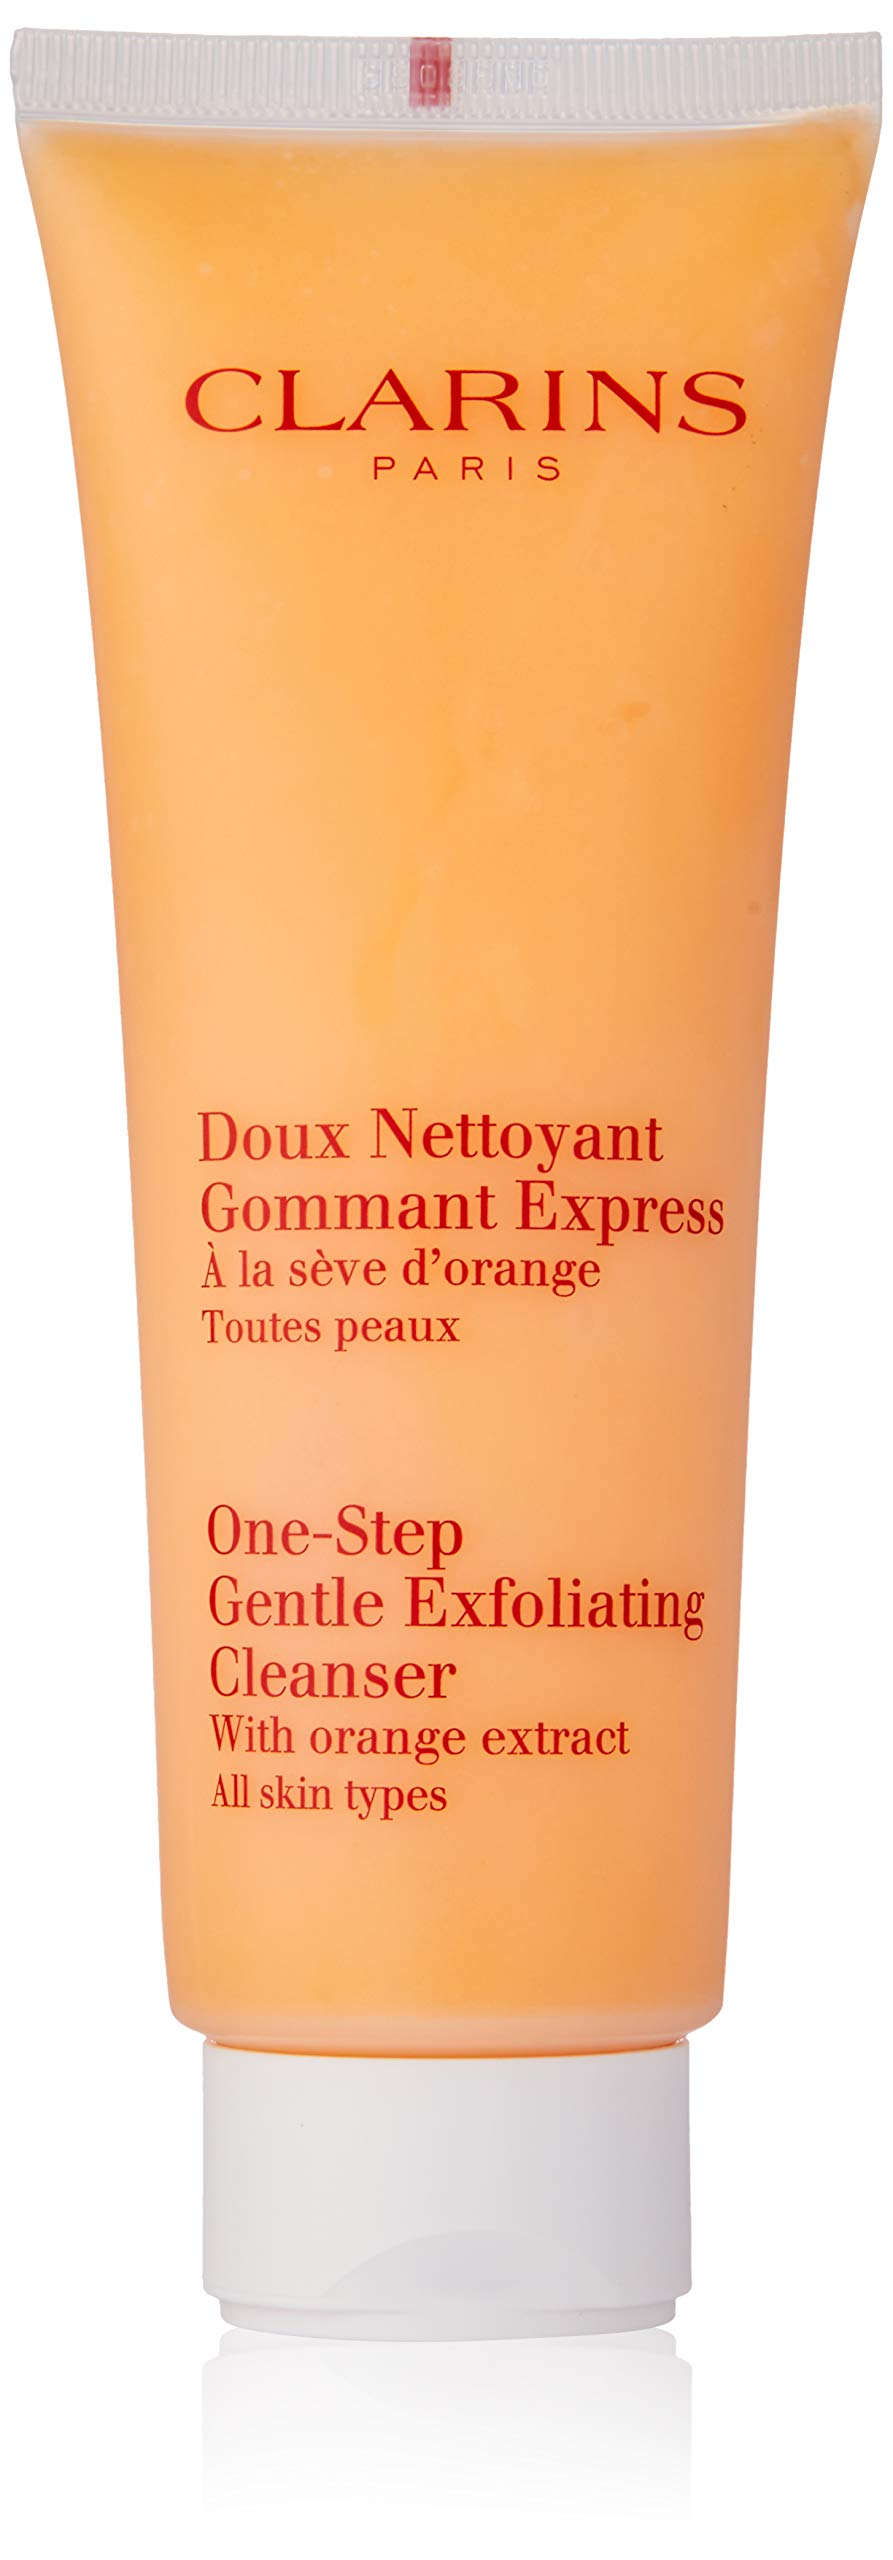 CLARINS One Step Gentle Exfoliating Cleanser, 4.3 Ounce